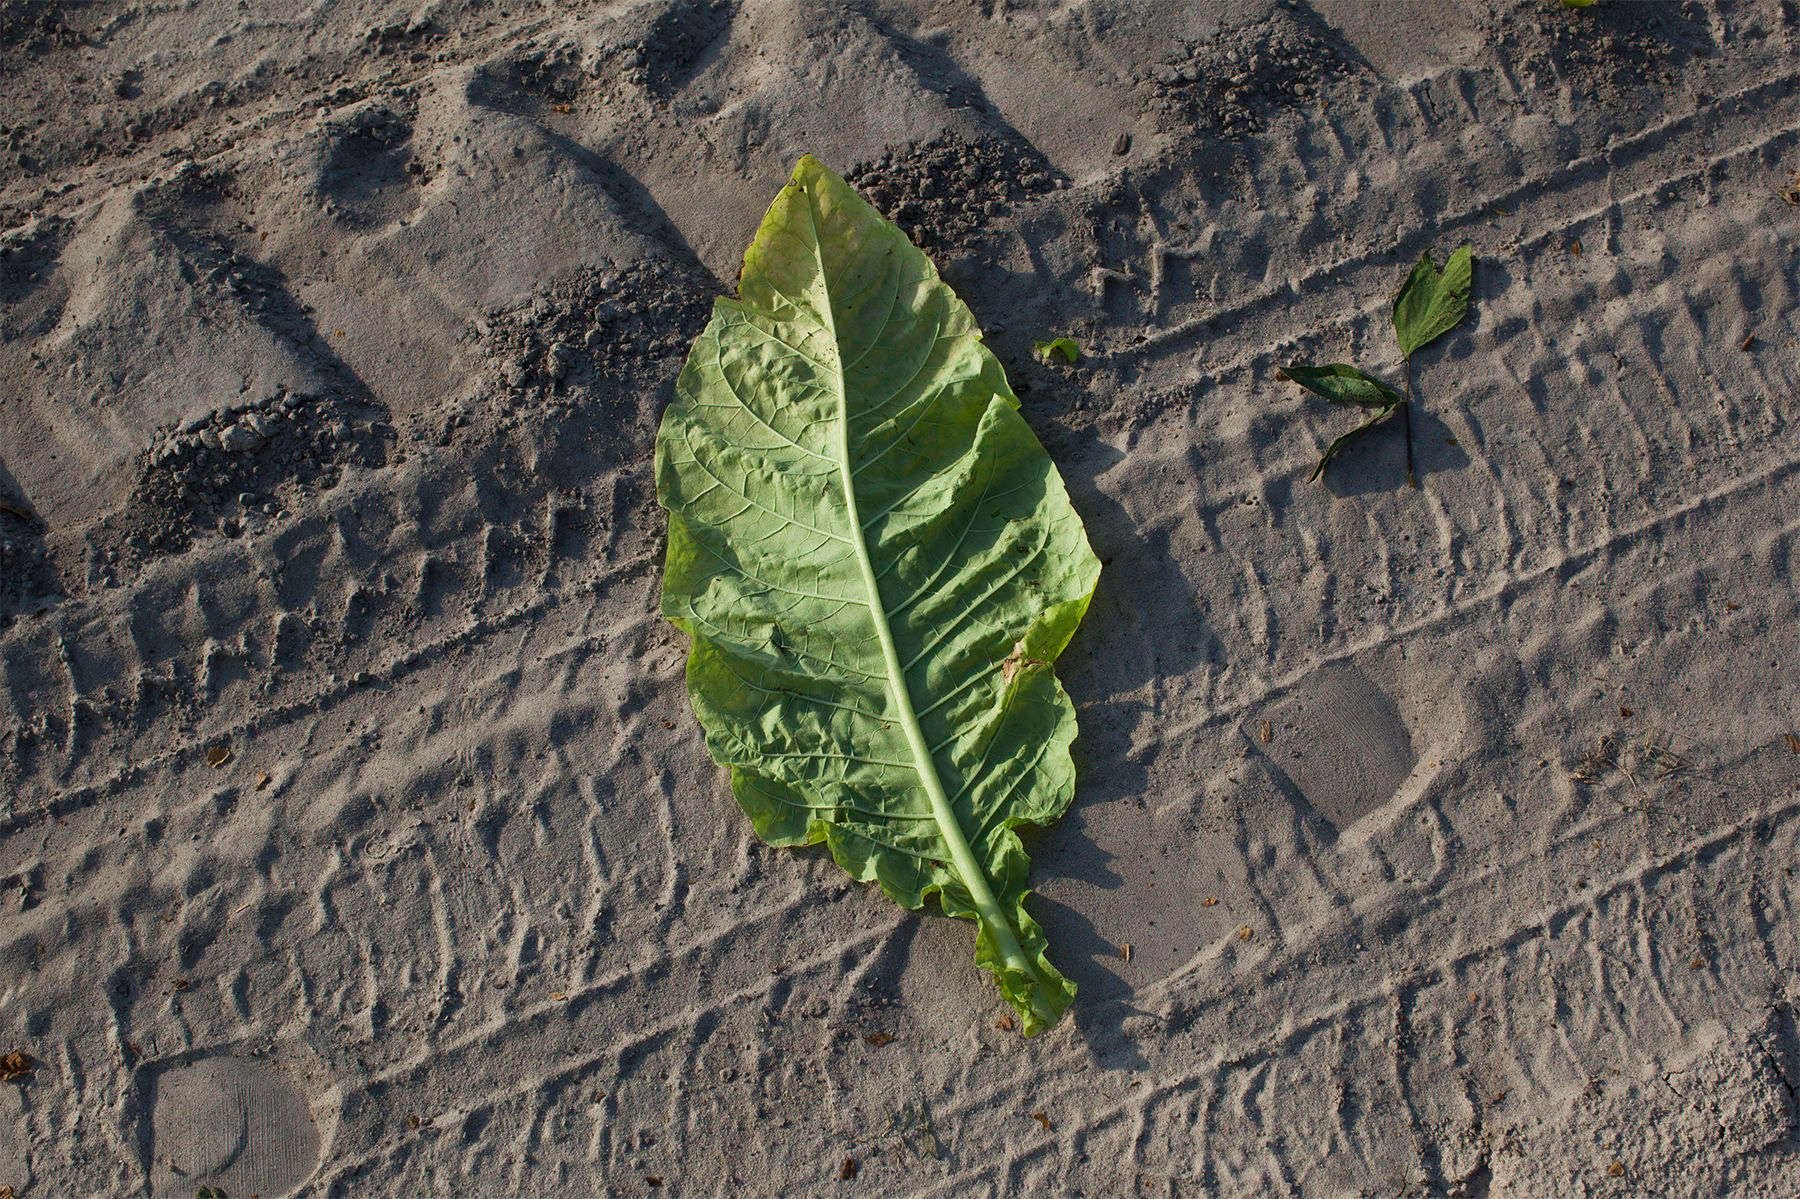 A bottom leaf of tobacco lays on a sandy road at a field maintained by Shelley Farms in the Pleasant View community of Horry County, South Carolina July 26, 2013. The traditional tobacco harvest requires many labor intensive hours to bring the crop to market, especially with the flue-cured variety prominent in the southern United States. With the growing health concerns with smoking in the US, most farmers use market cooperatives to sell their crop to the growing markets in China.      Picture taken on July 26, 2013.   REUTERS/Randall Hill (UNITED STATES)